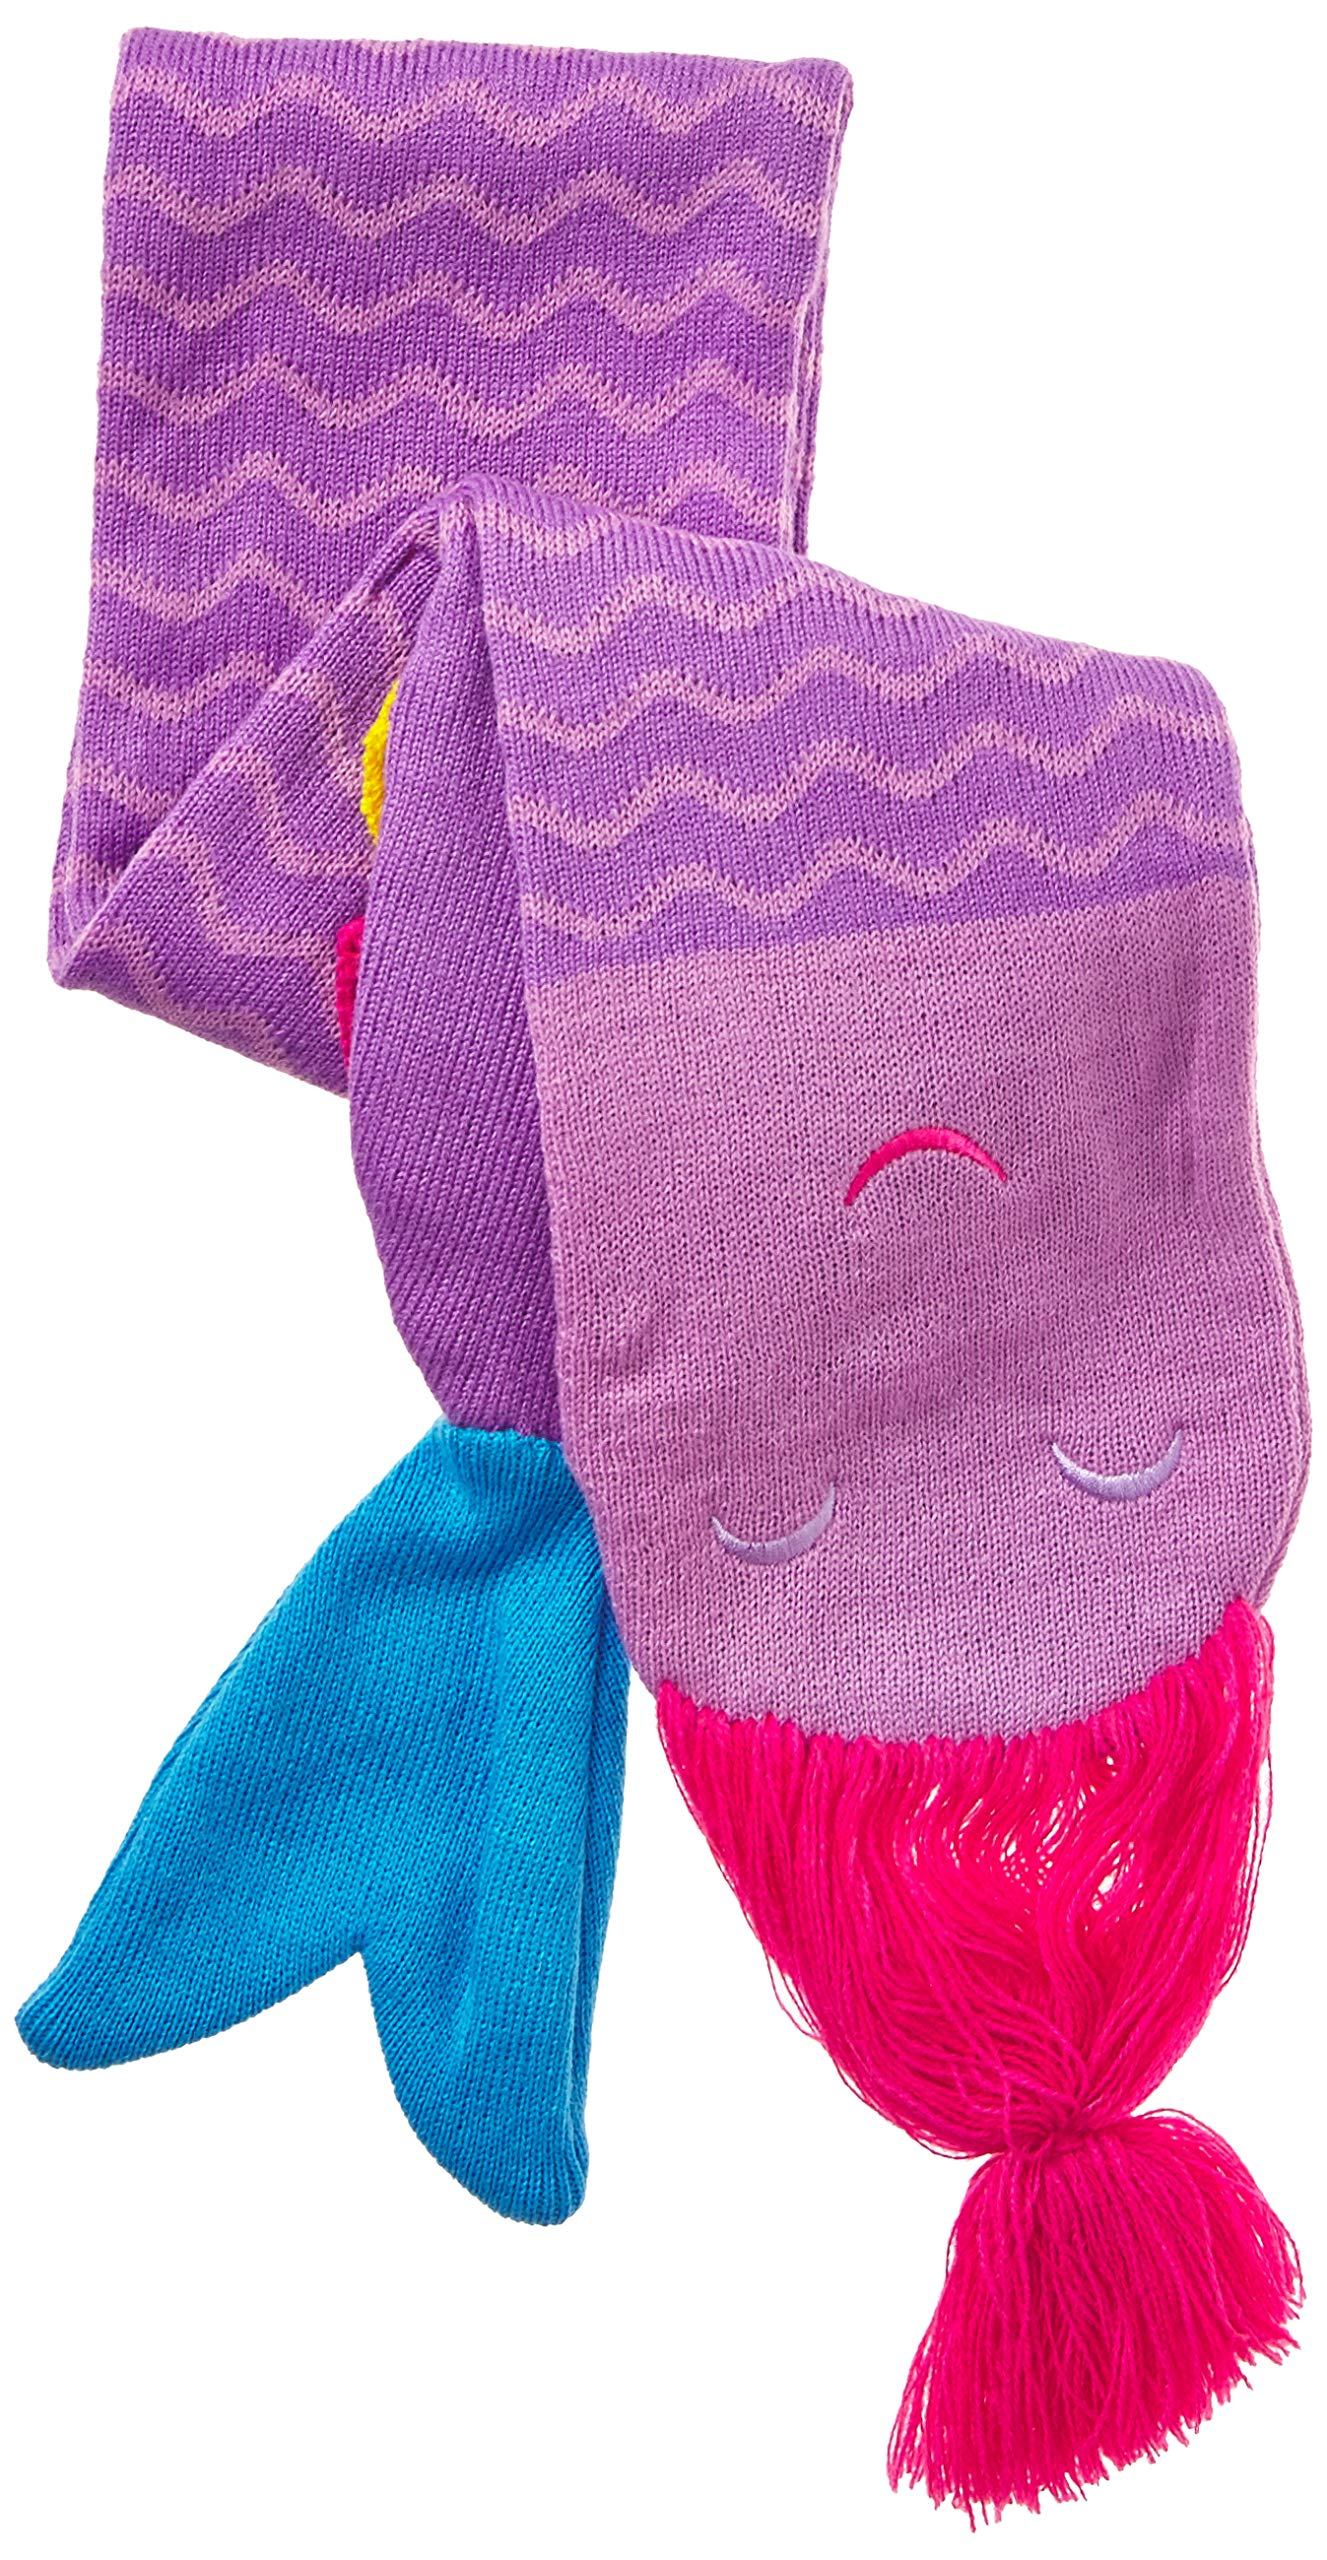 Kidorable Girls' Little Mermaid Hat Scarf Set, Purple, Small by Kidorable (Image #2)